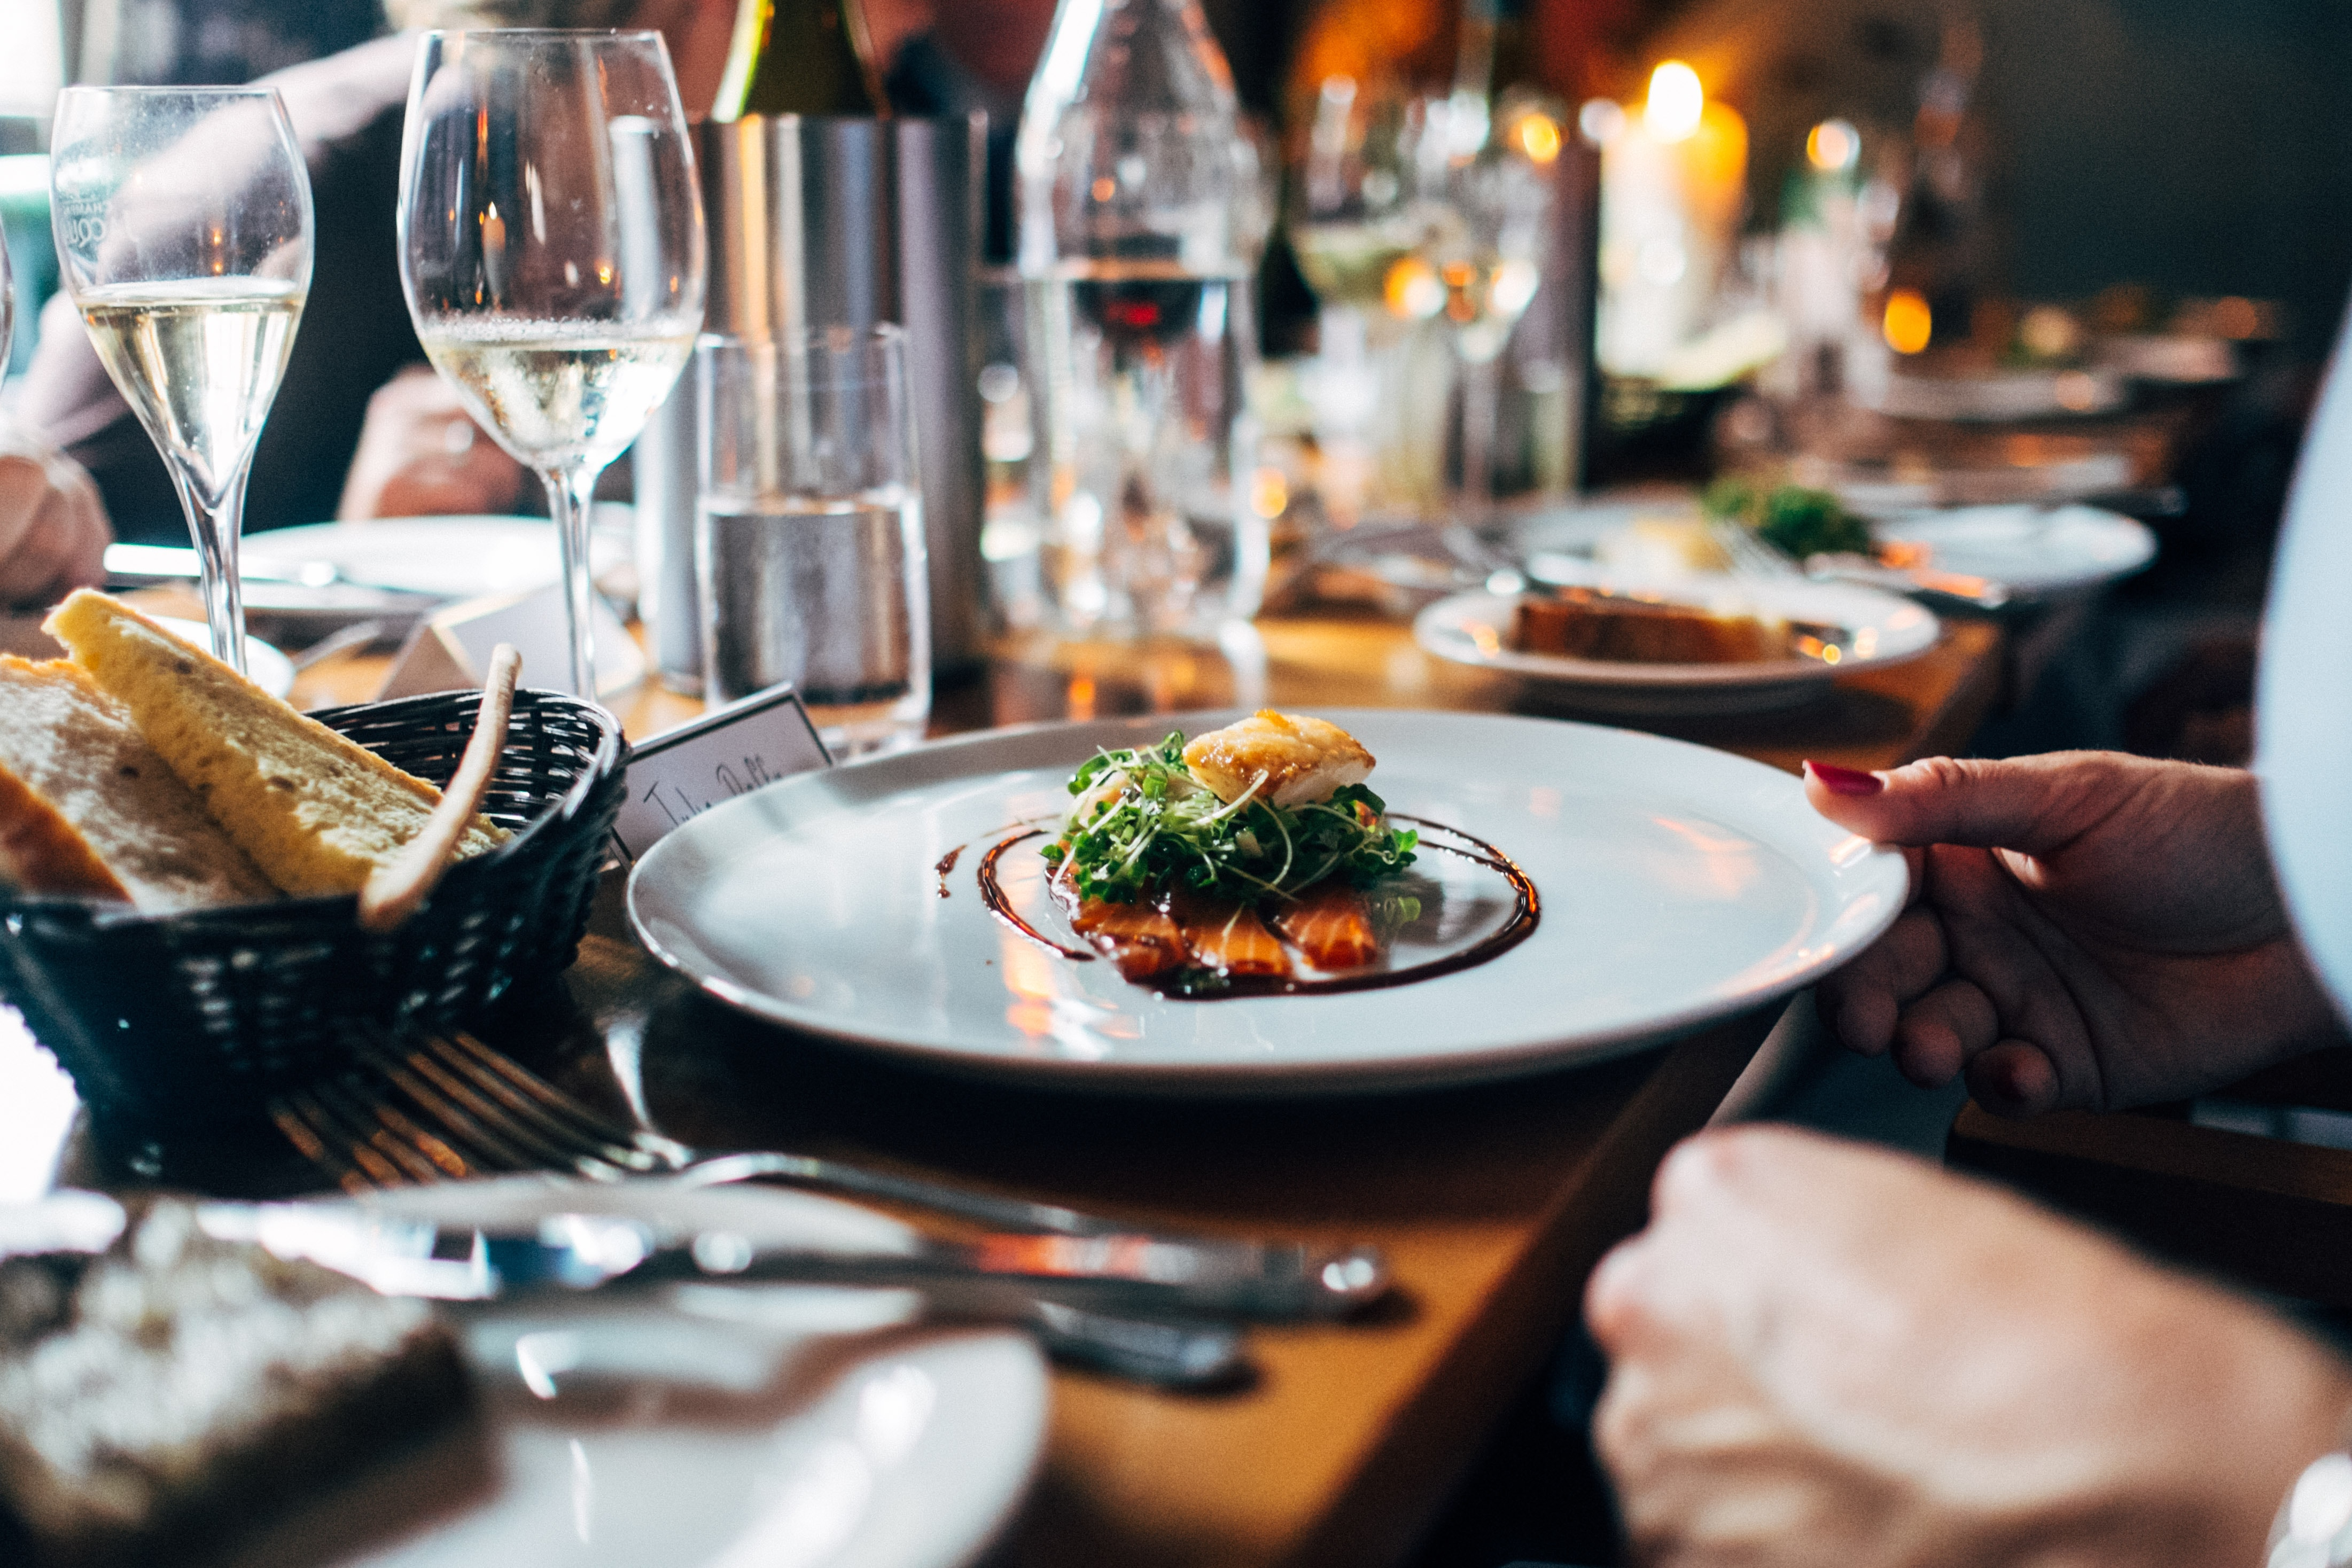 The Beginner's Guide to Opening a Restaurant: Essential Things You Need